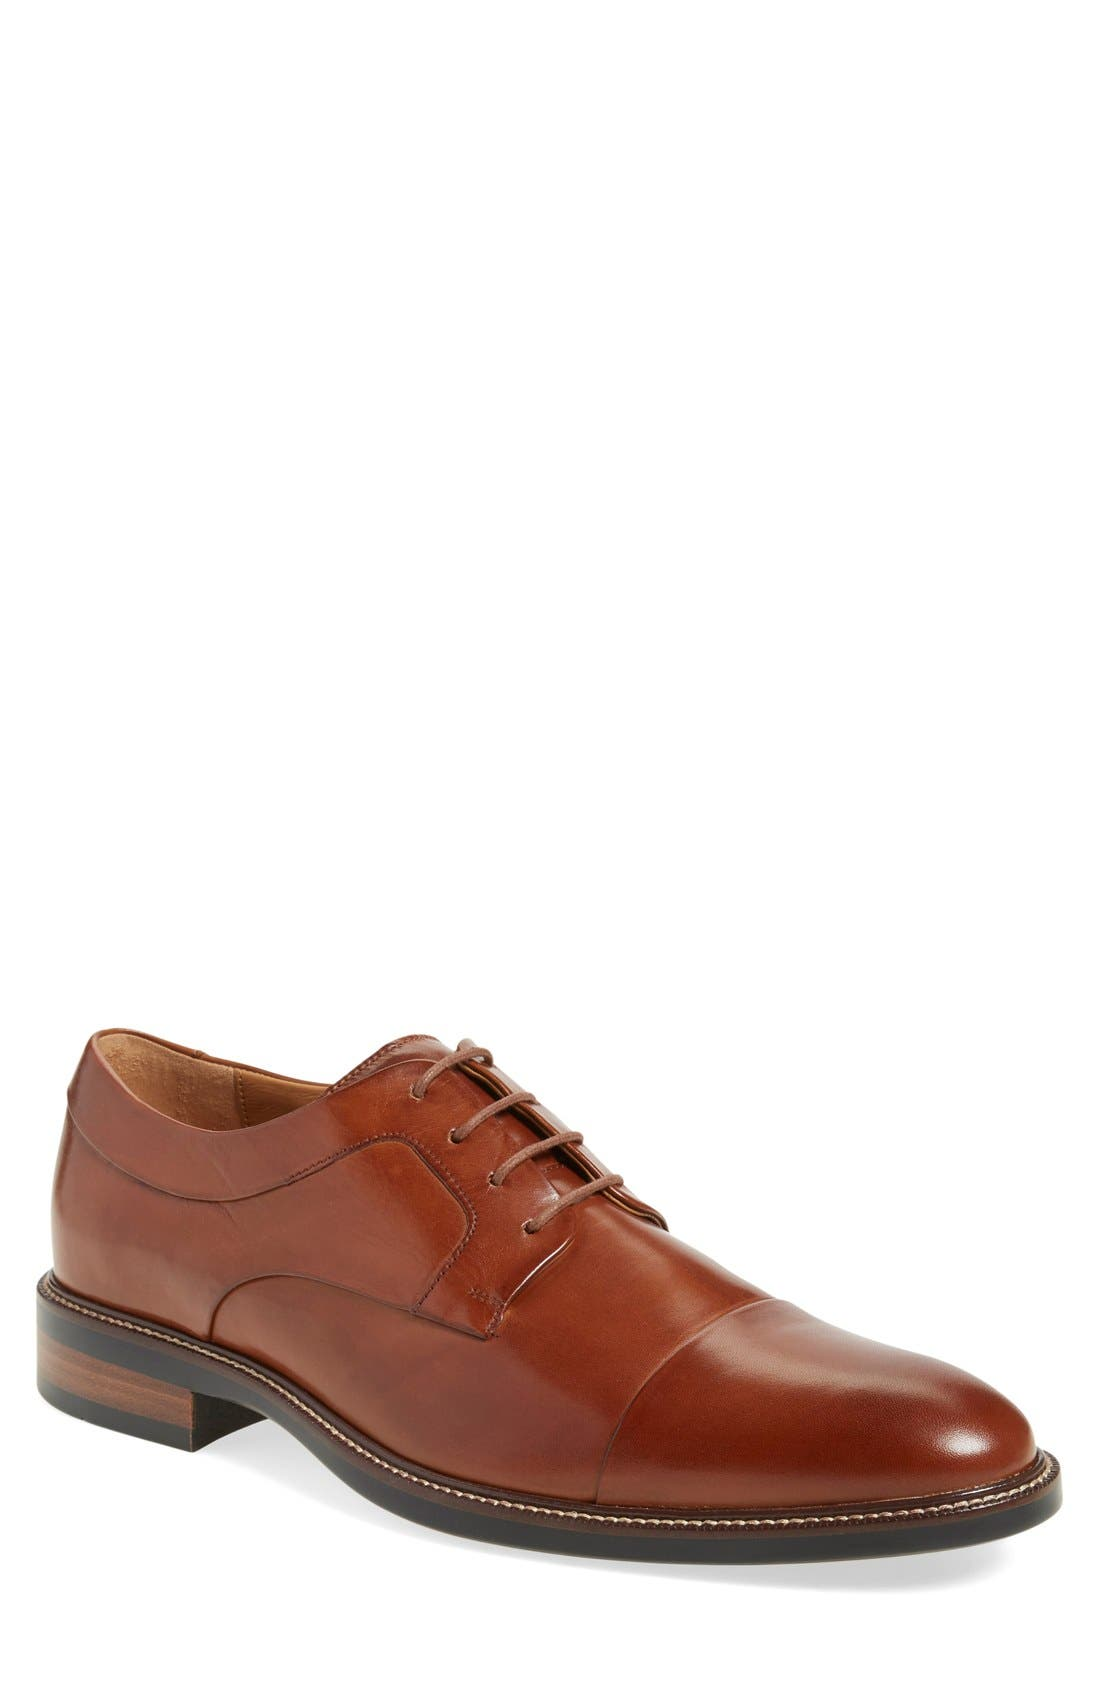 Main Image - Cole Haan 'Warren' Cap Toe Derby (Men)